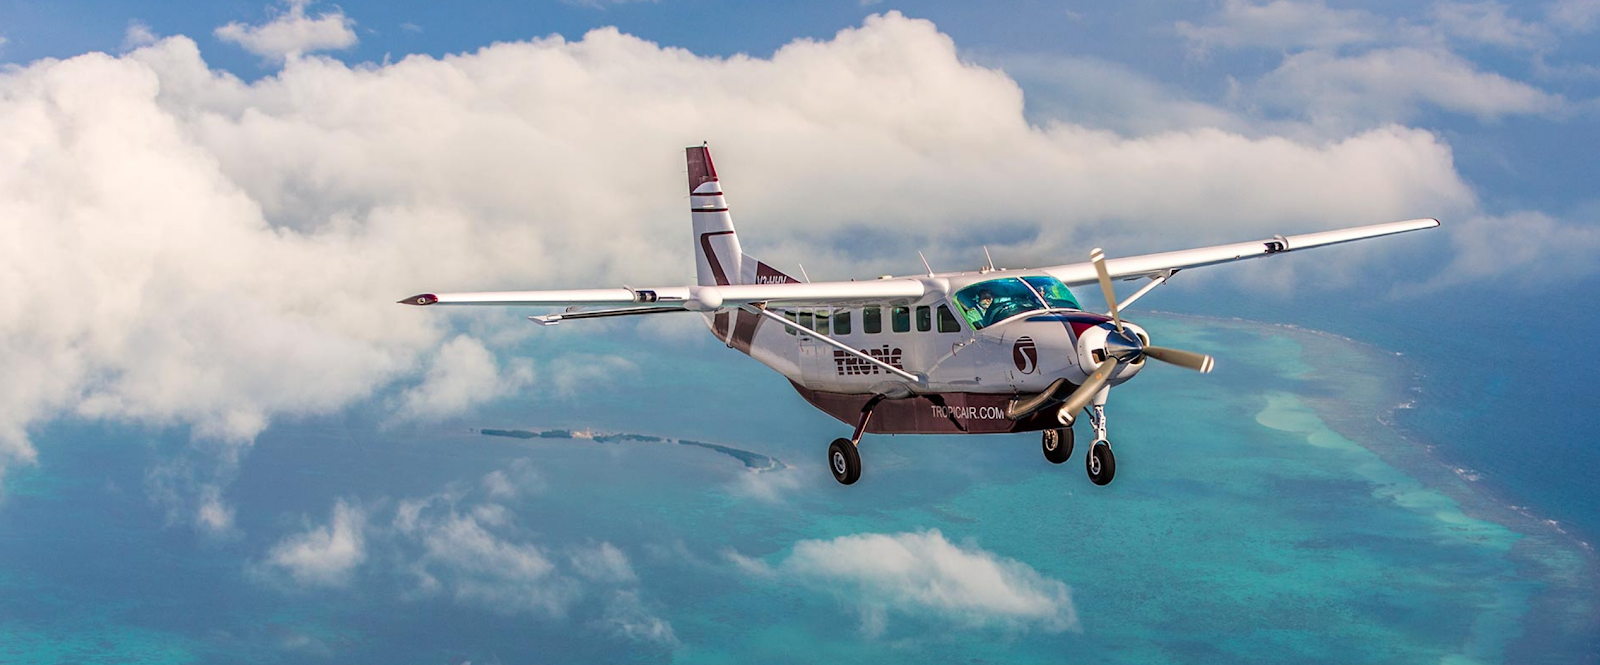 Travel Brands in Search of Influencers   Tropic Air Belize